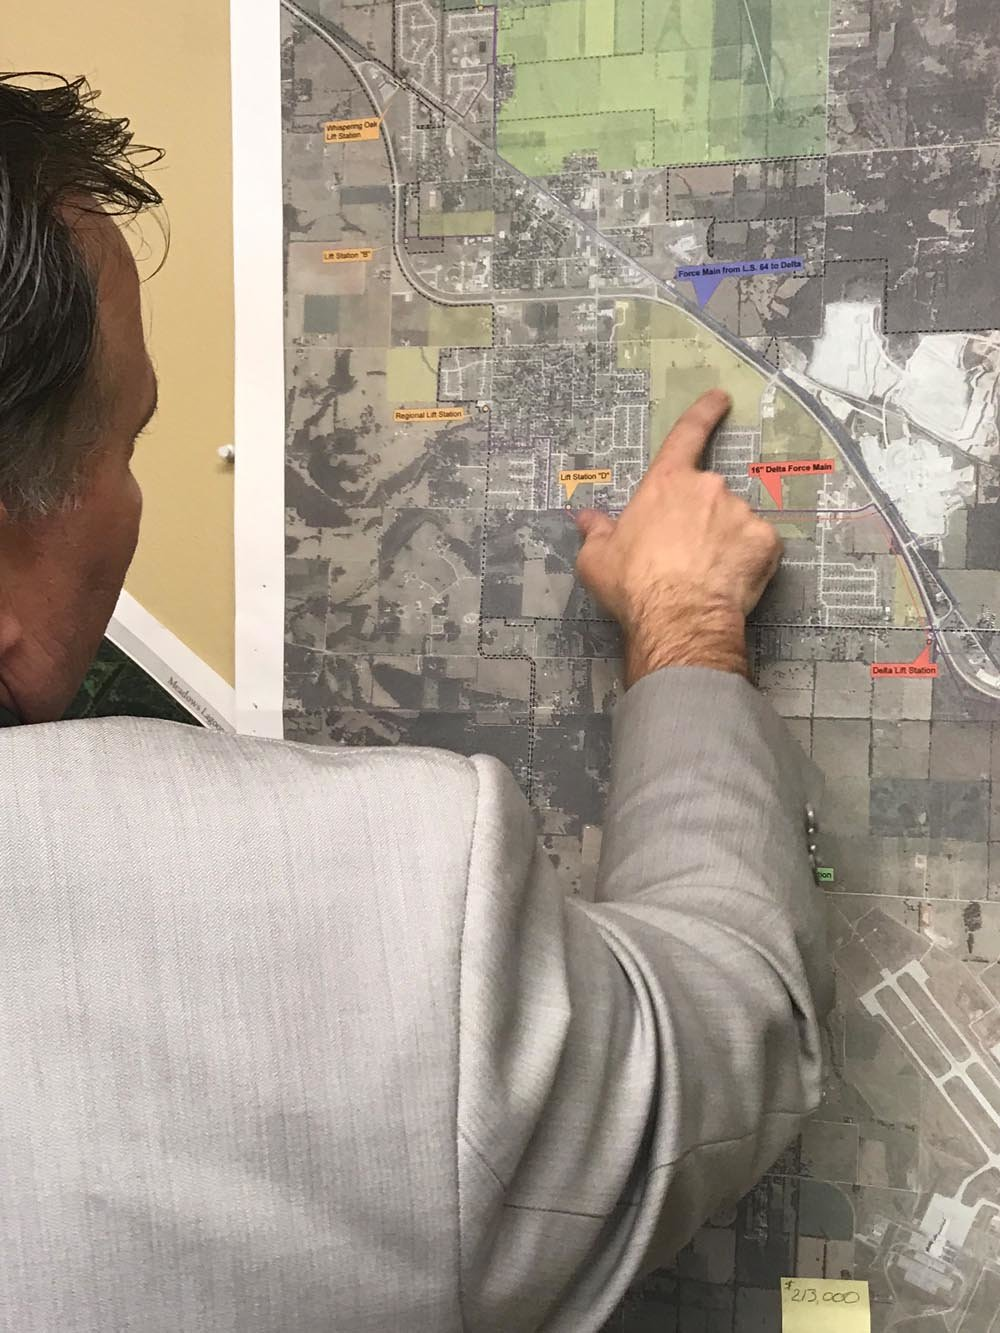 In Willard City Administrator Brad Gray's office is a map pinpointing areas for possible development.